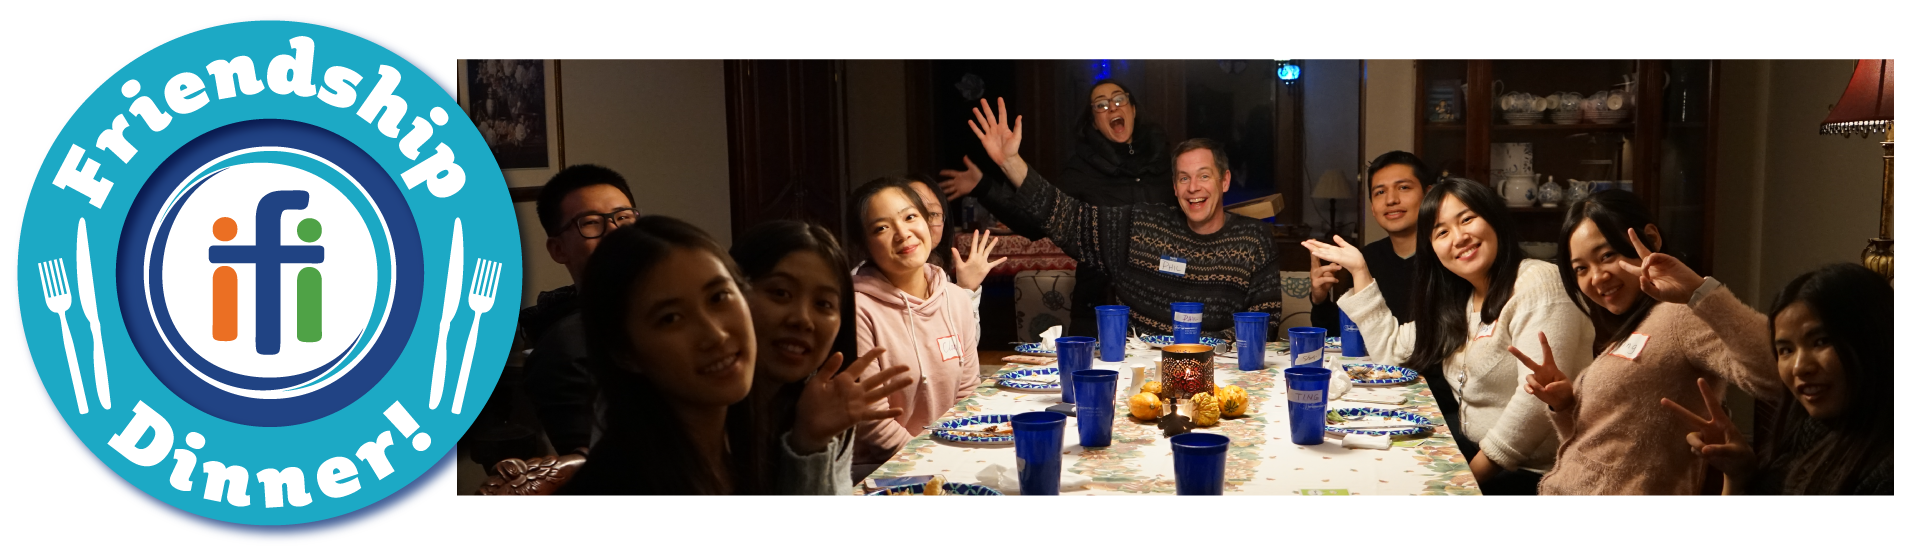 Friendship Dinner March 21st, 2020